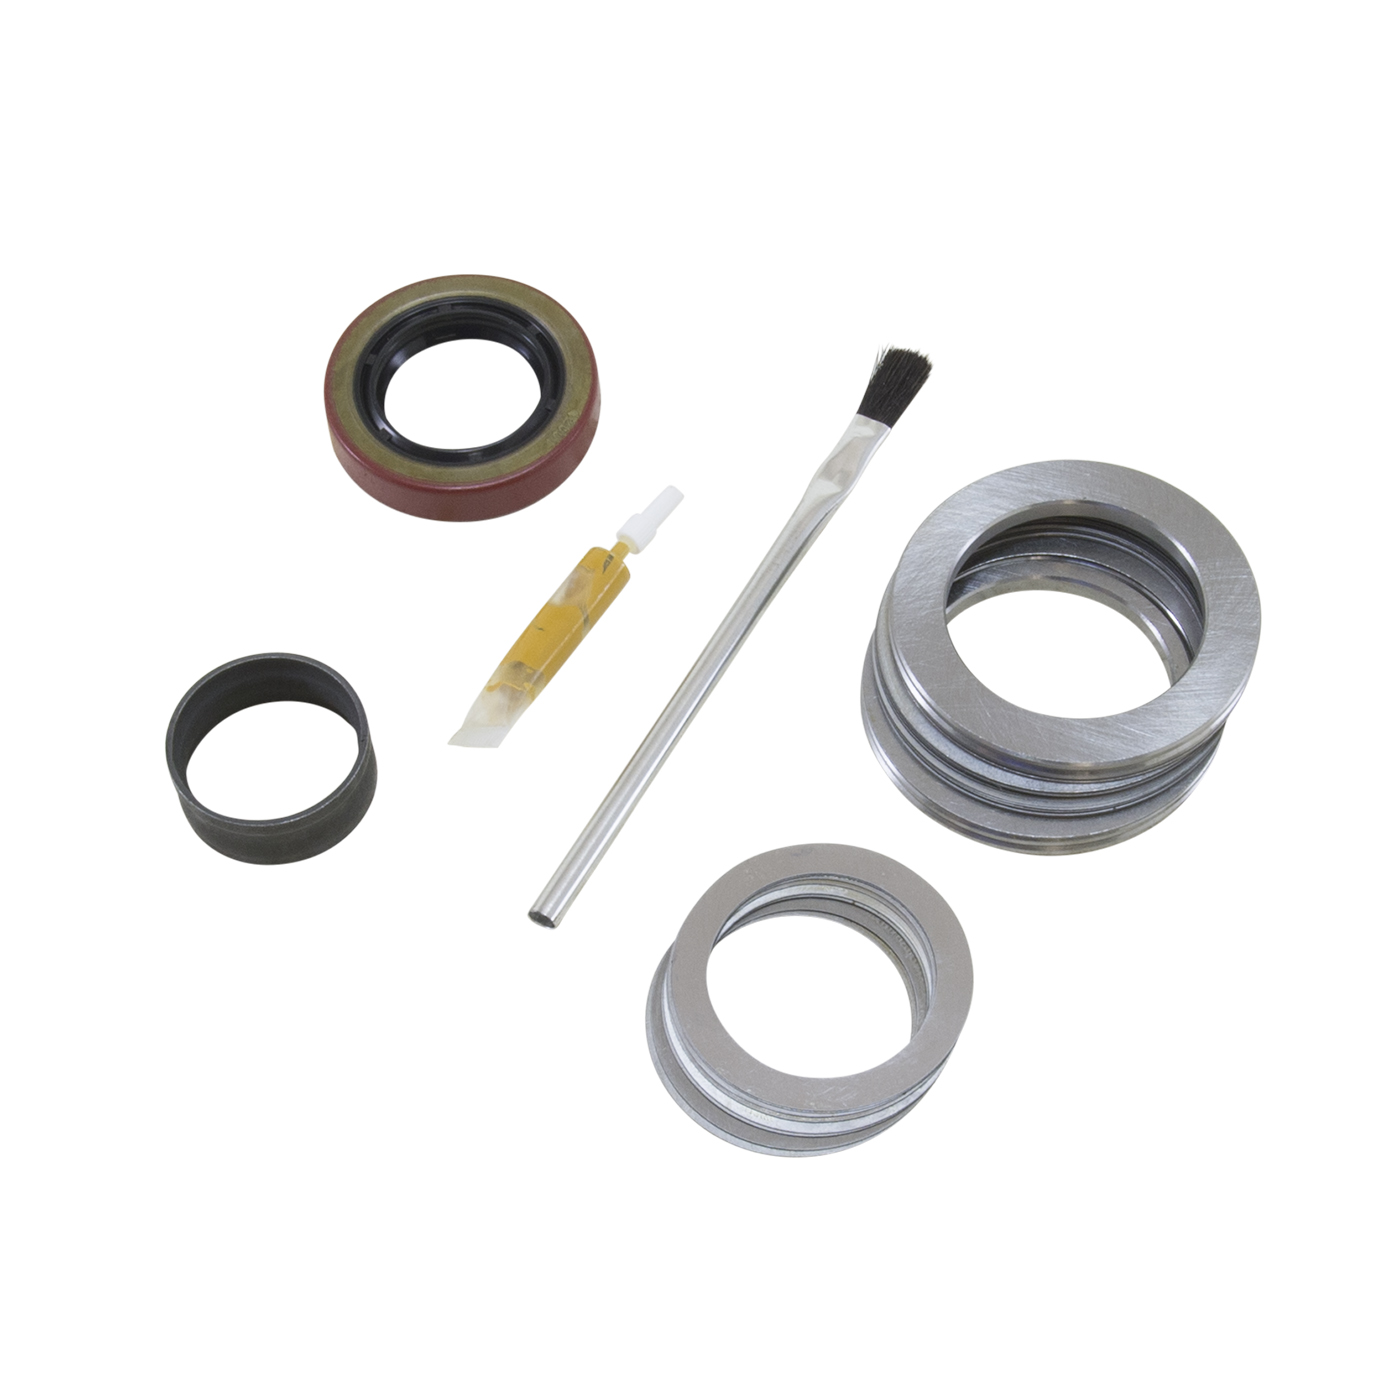 MK GM8.5-F - Yukon Minor install kit for GM 8.5